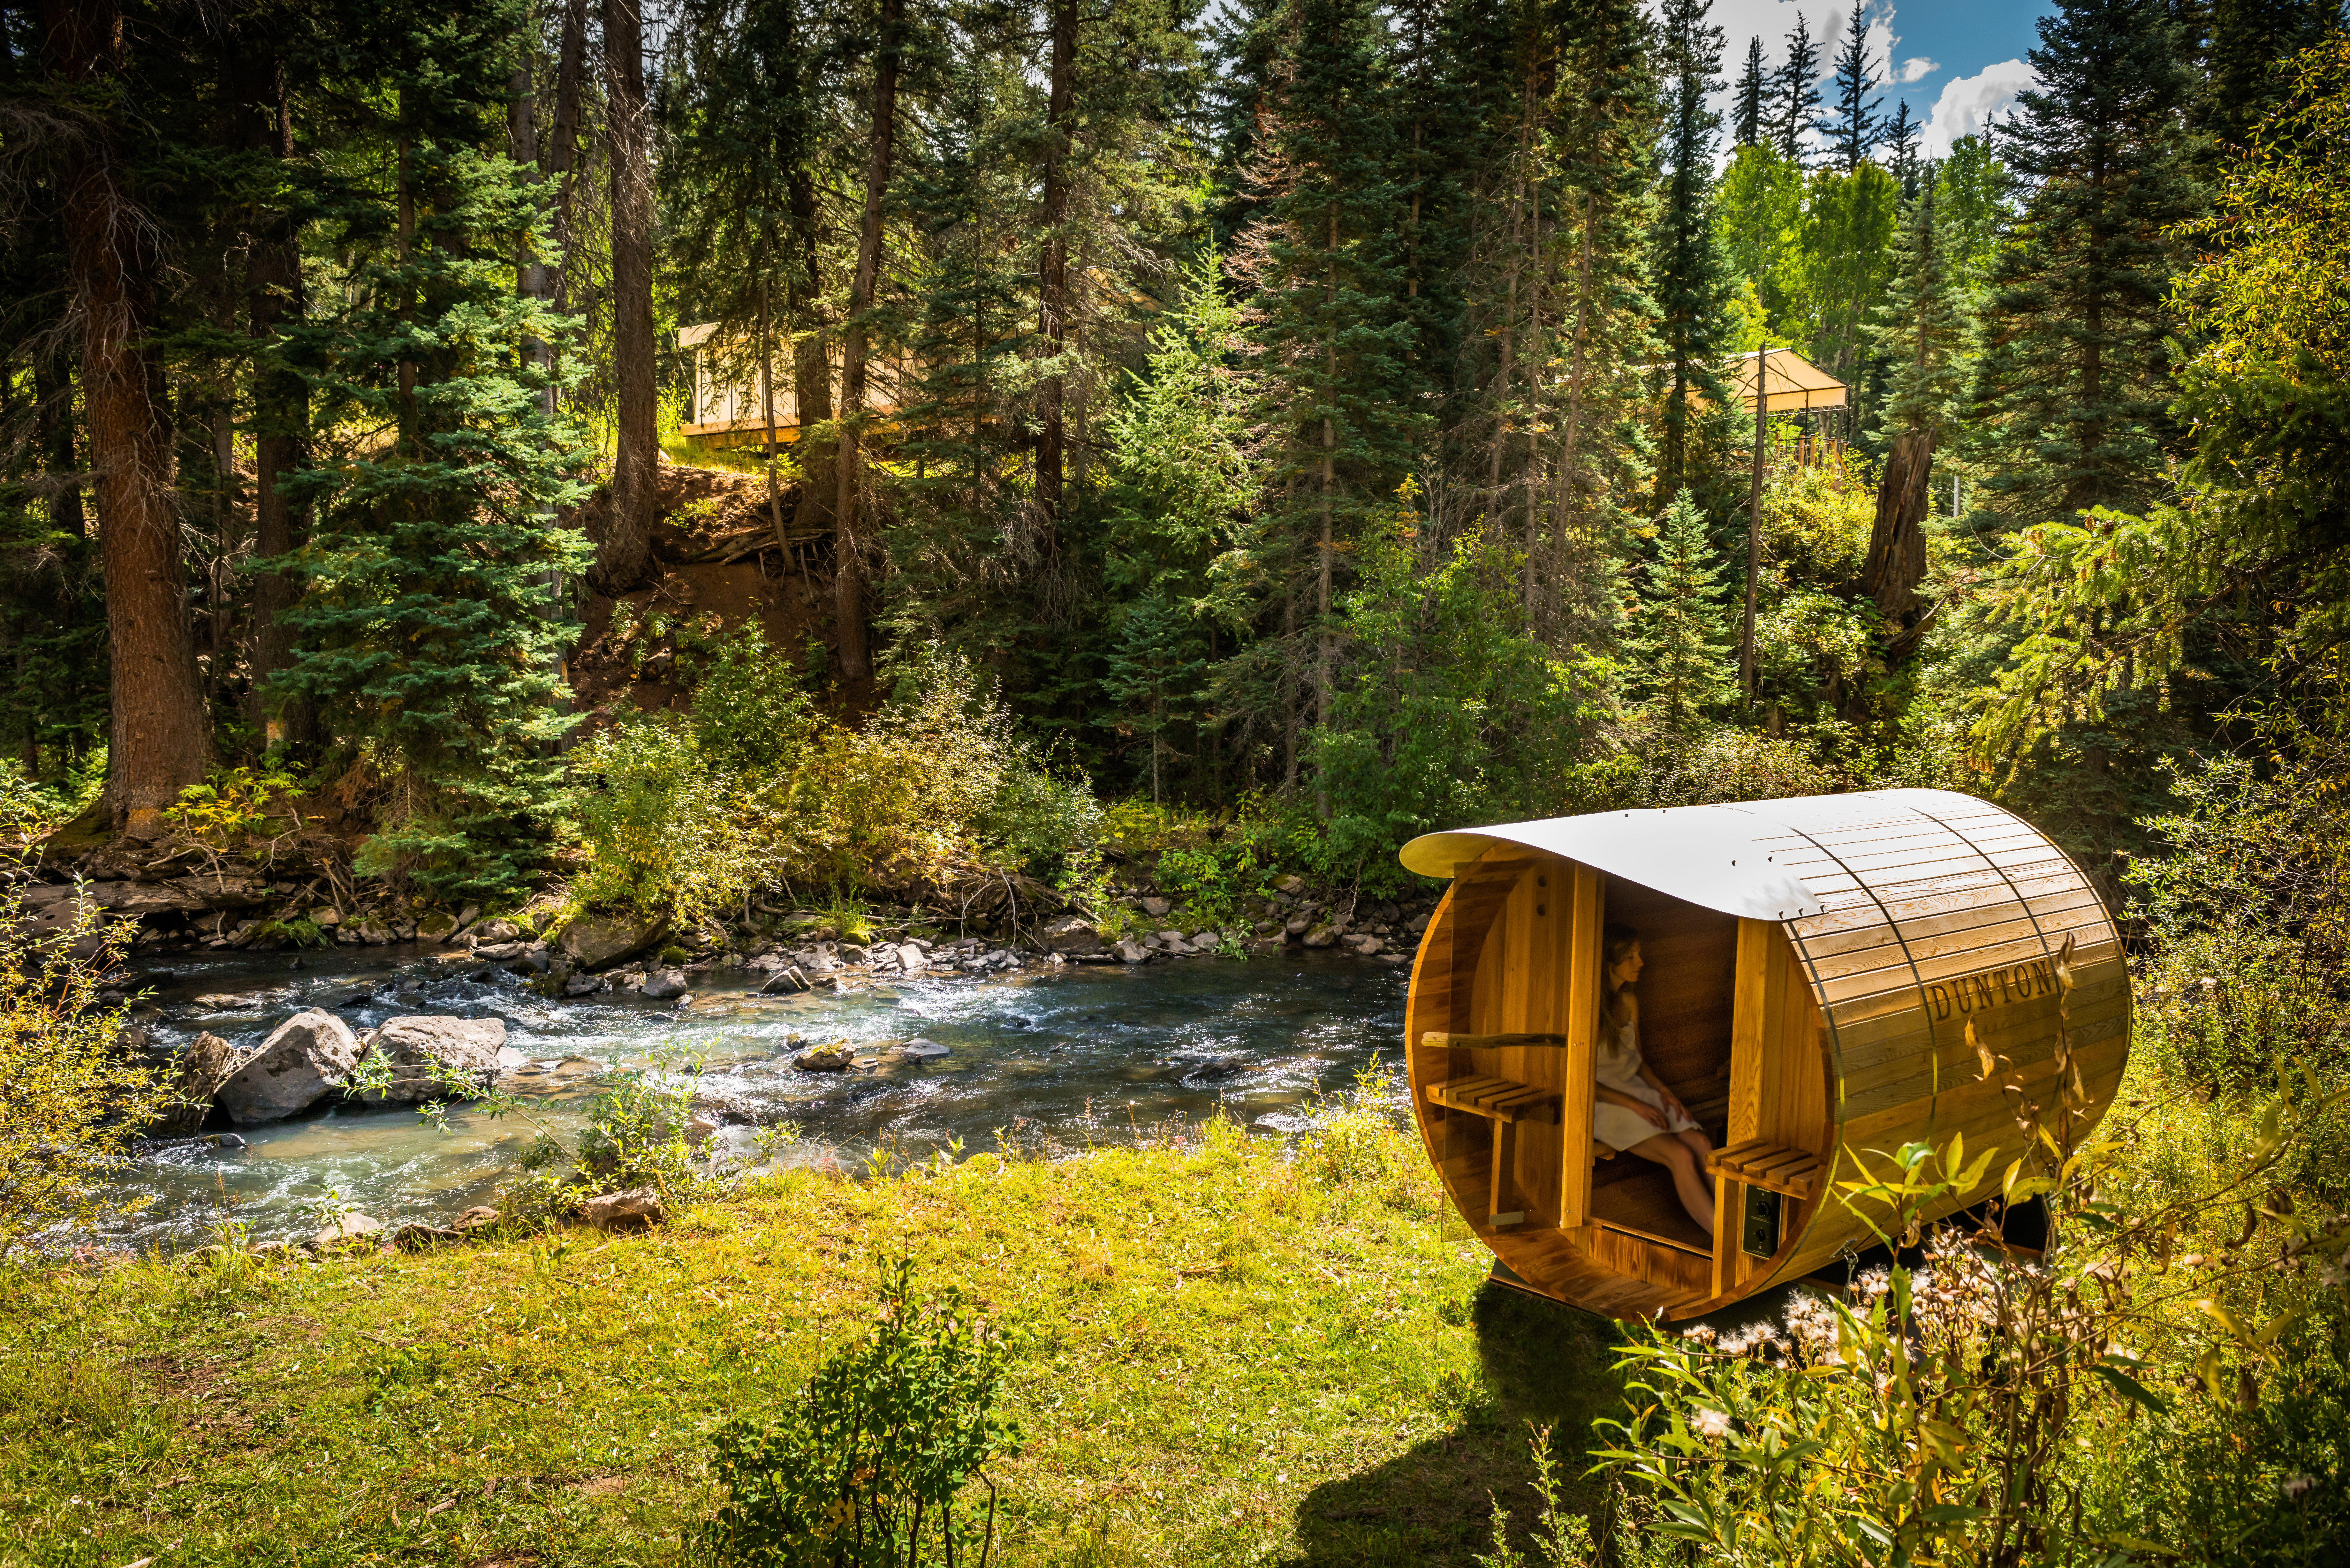 Adventure Country Forest Glamping Grounds Luxury Travel Mountains Rustic Scenic views Trip Ideas Wellness tree grass habitat Nature wilderness natural environment ecosystem woodland season wooded autumn Jungle stream trail rainforest surrounded lush